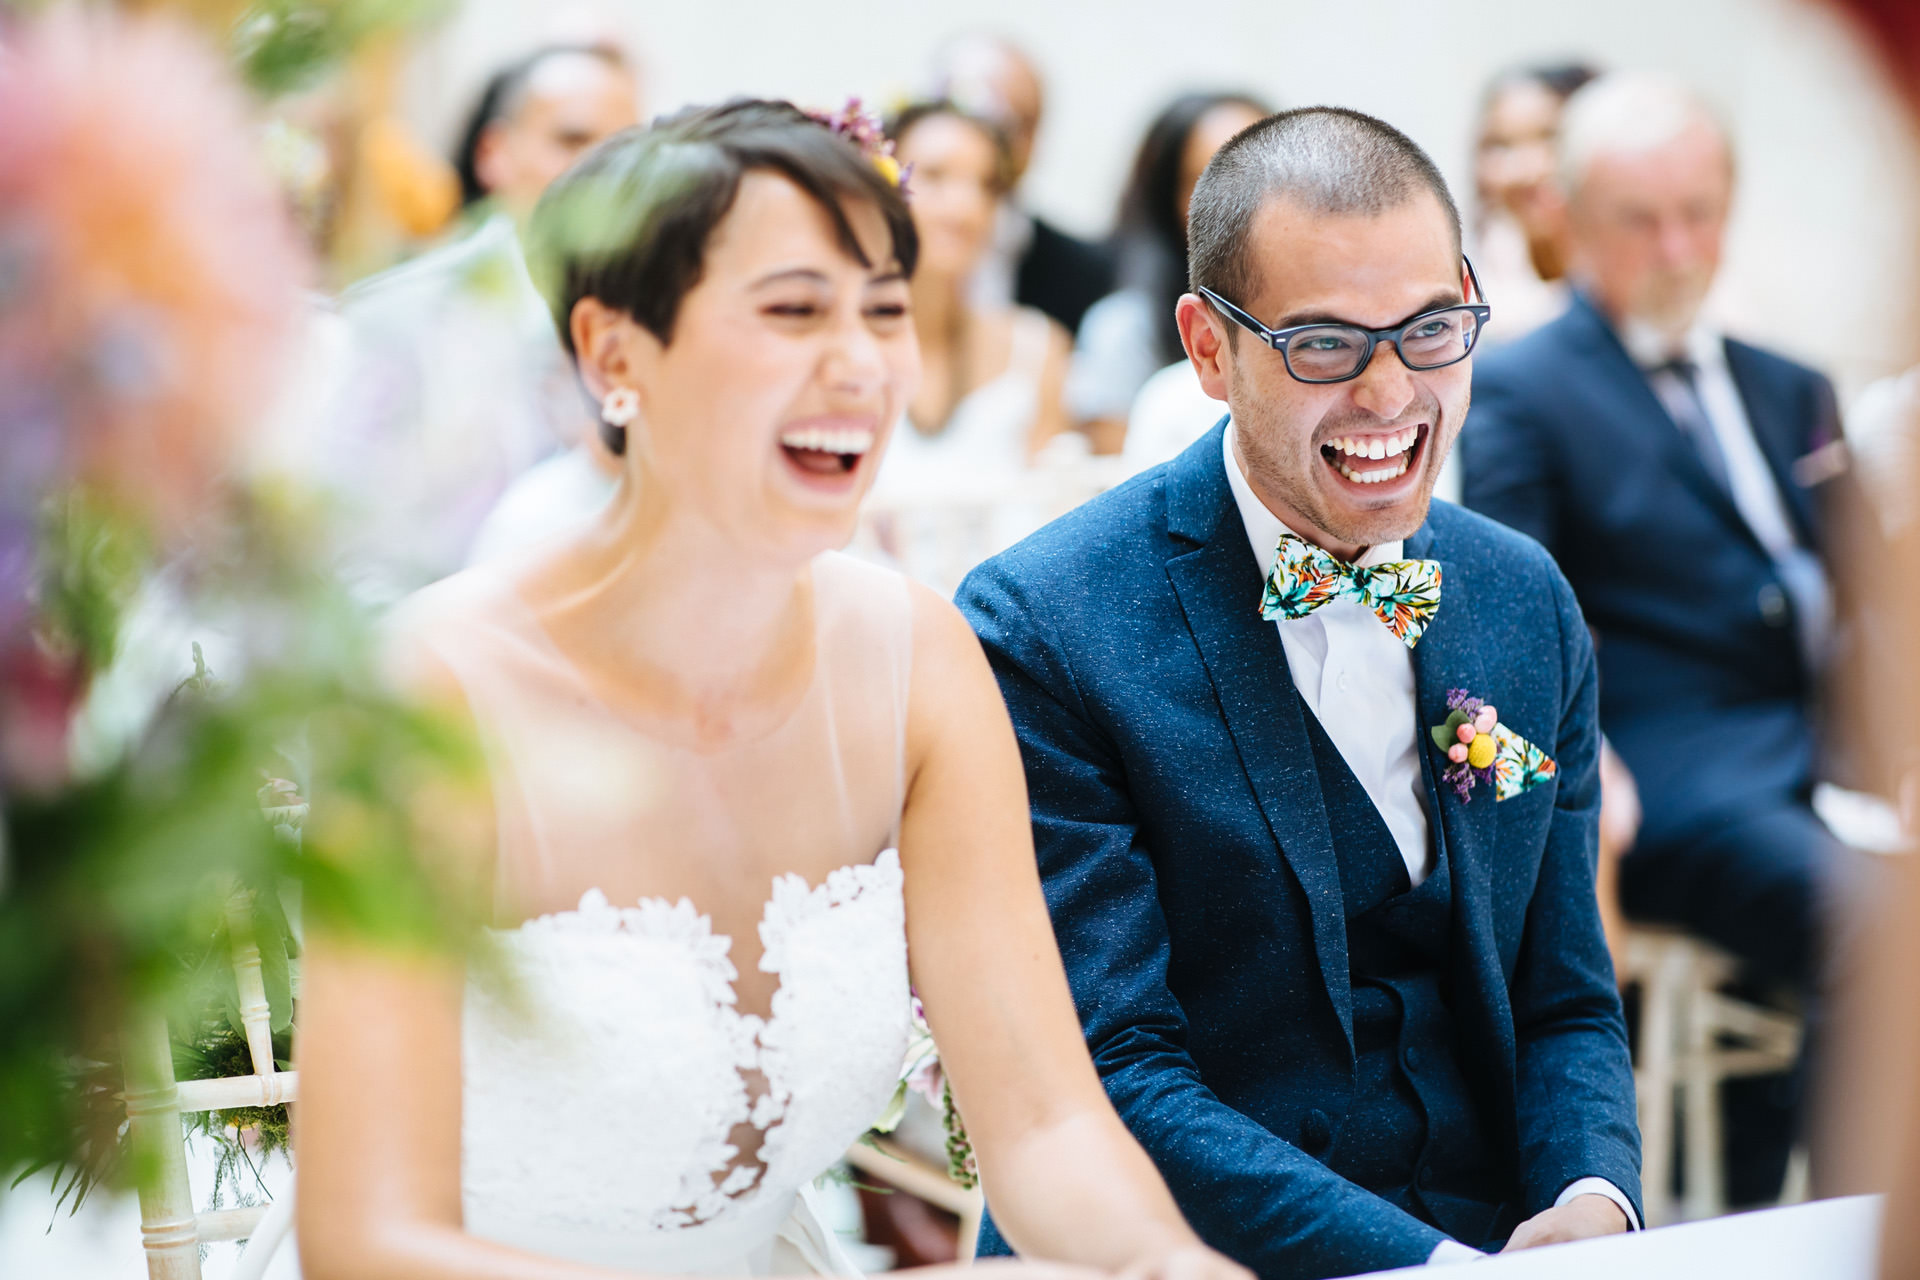 bride and groom laughing during wedding ceremony at Hammersmith town hall